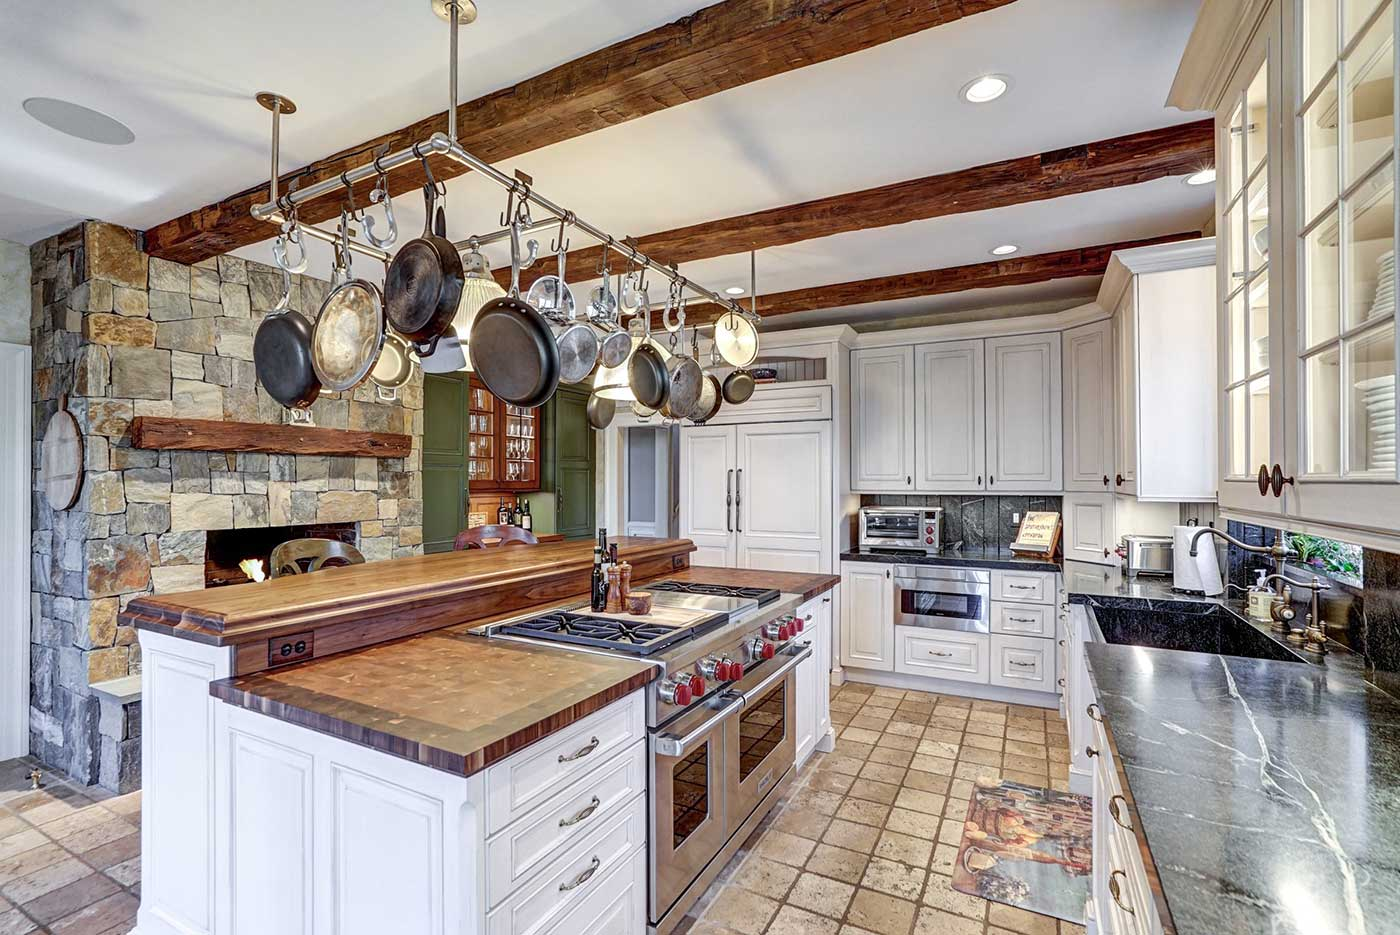 Kitchen Island with Two Butcher Block Countertops